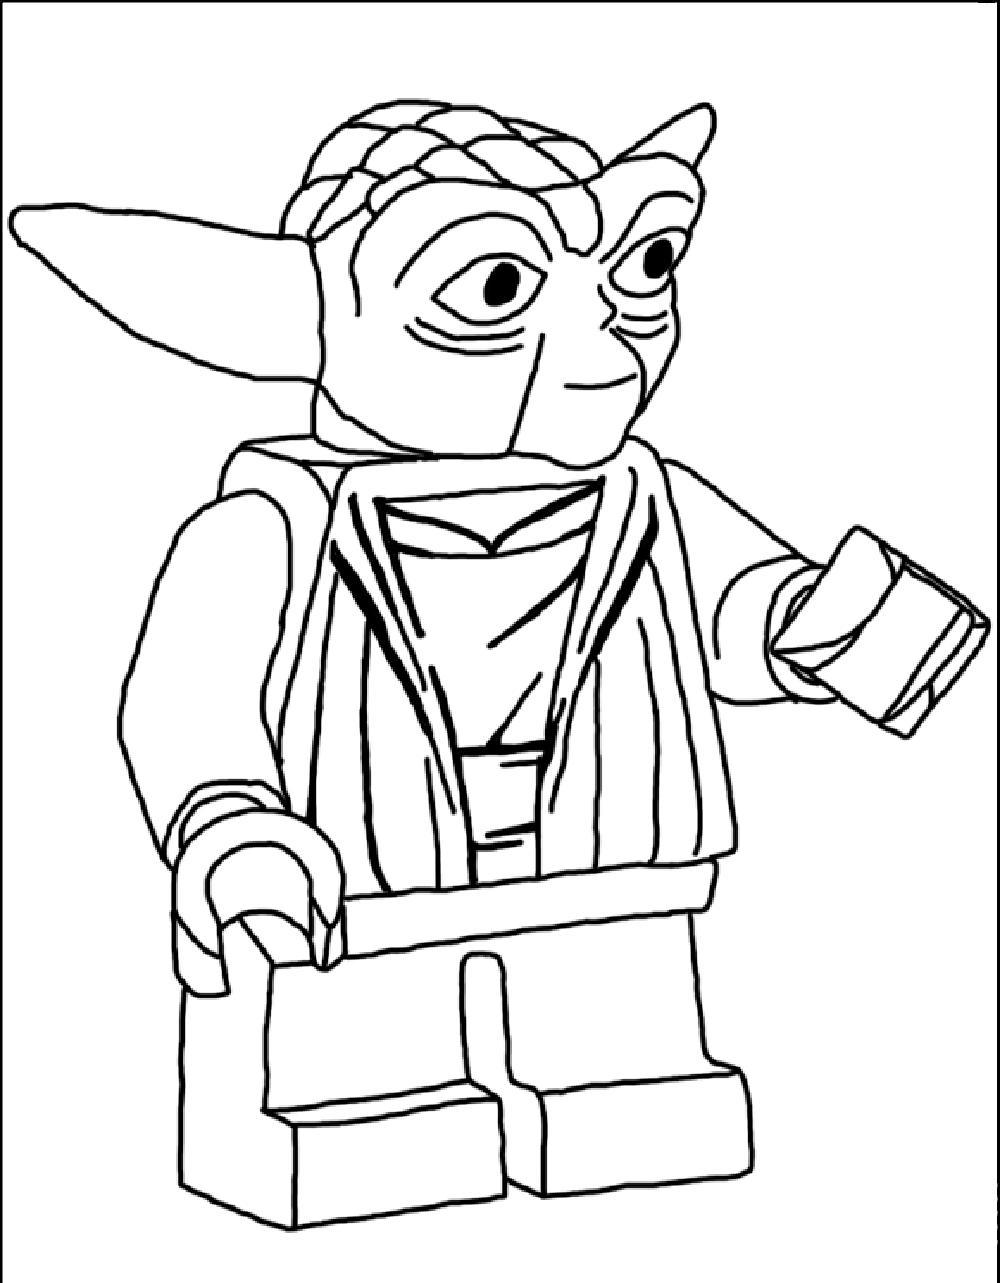 coloring lego printables lego coloring pages best coloring pages for kids printables lego coloring